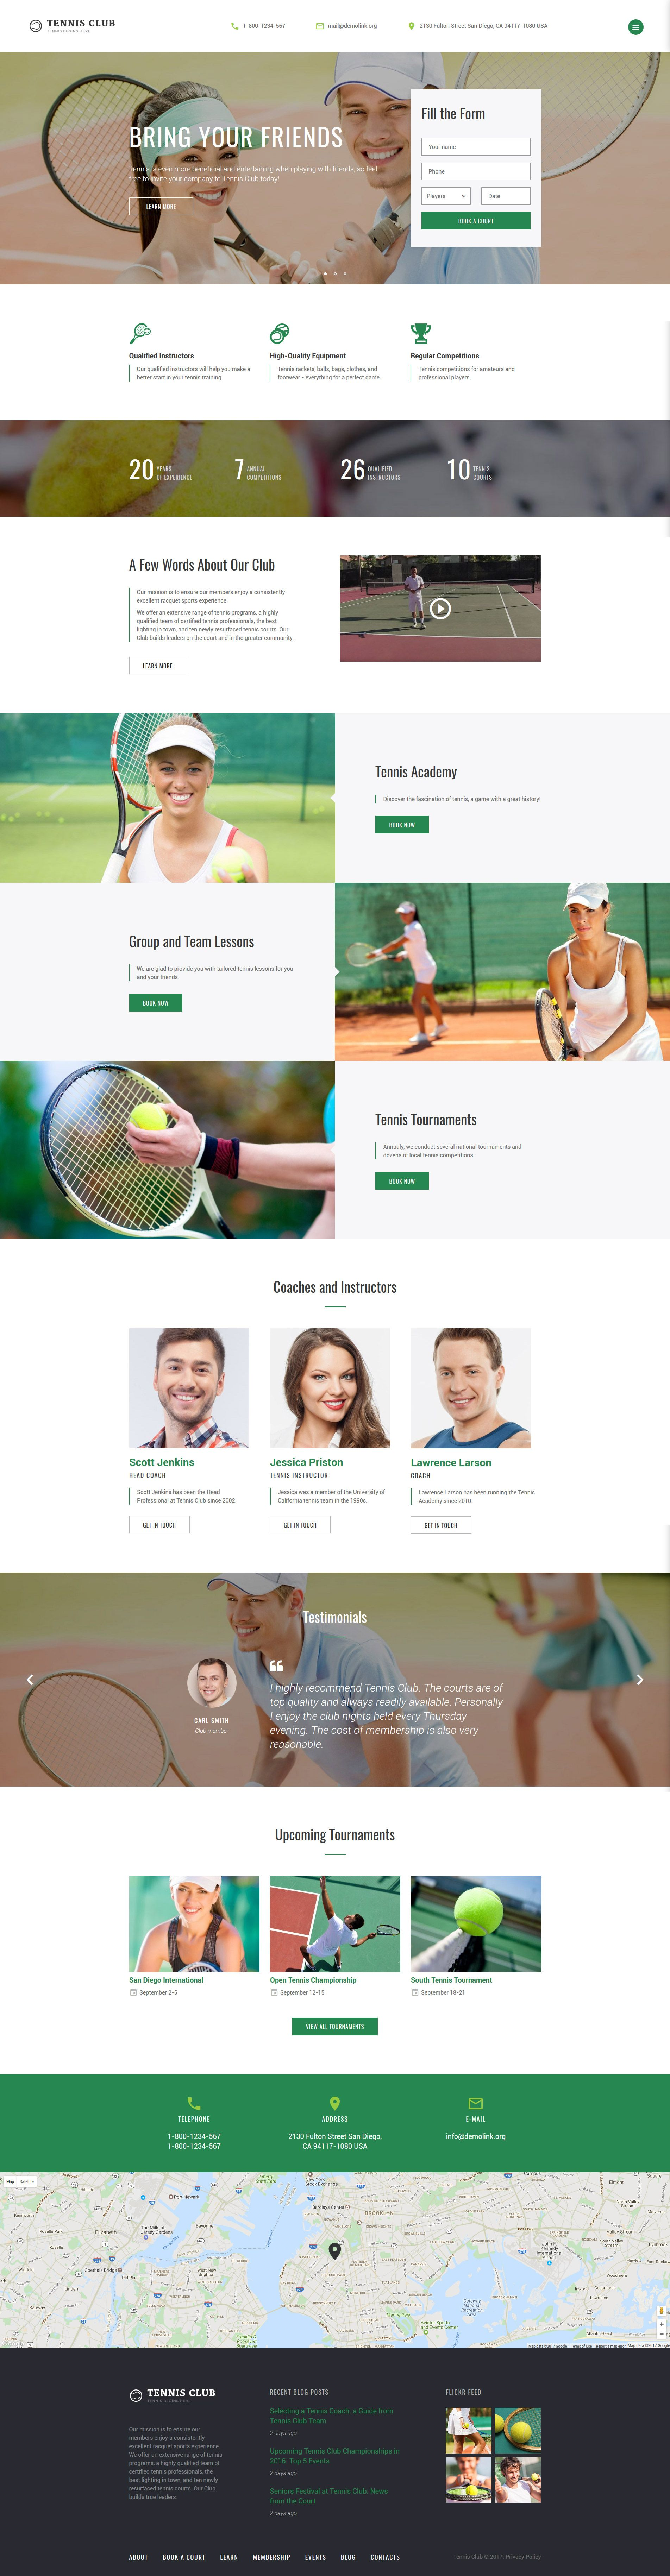 Tennis Club - Sports & Events Multipage Website Template | Template ...